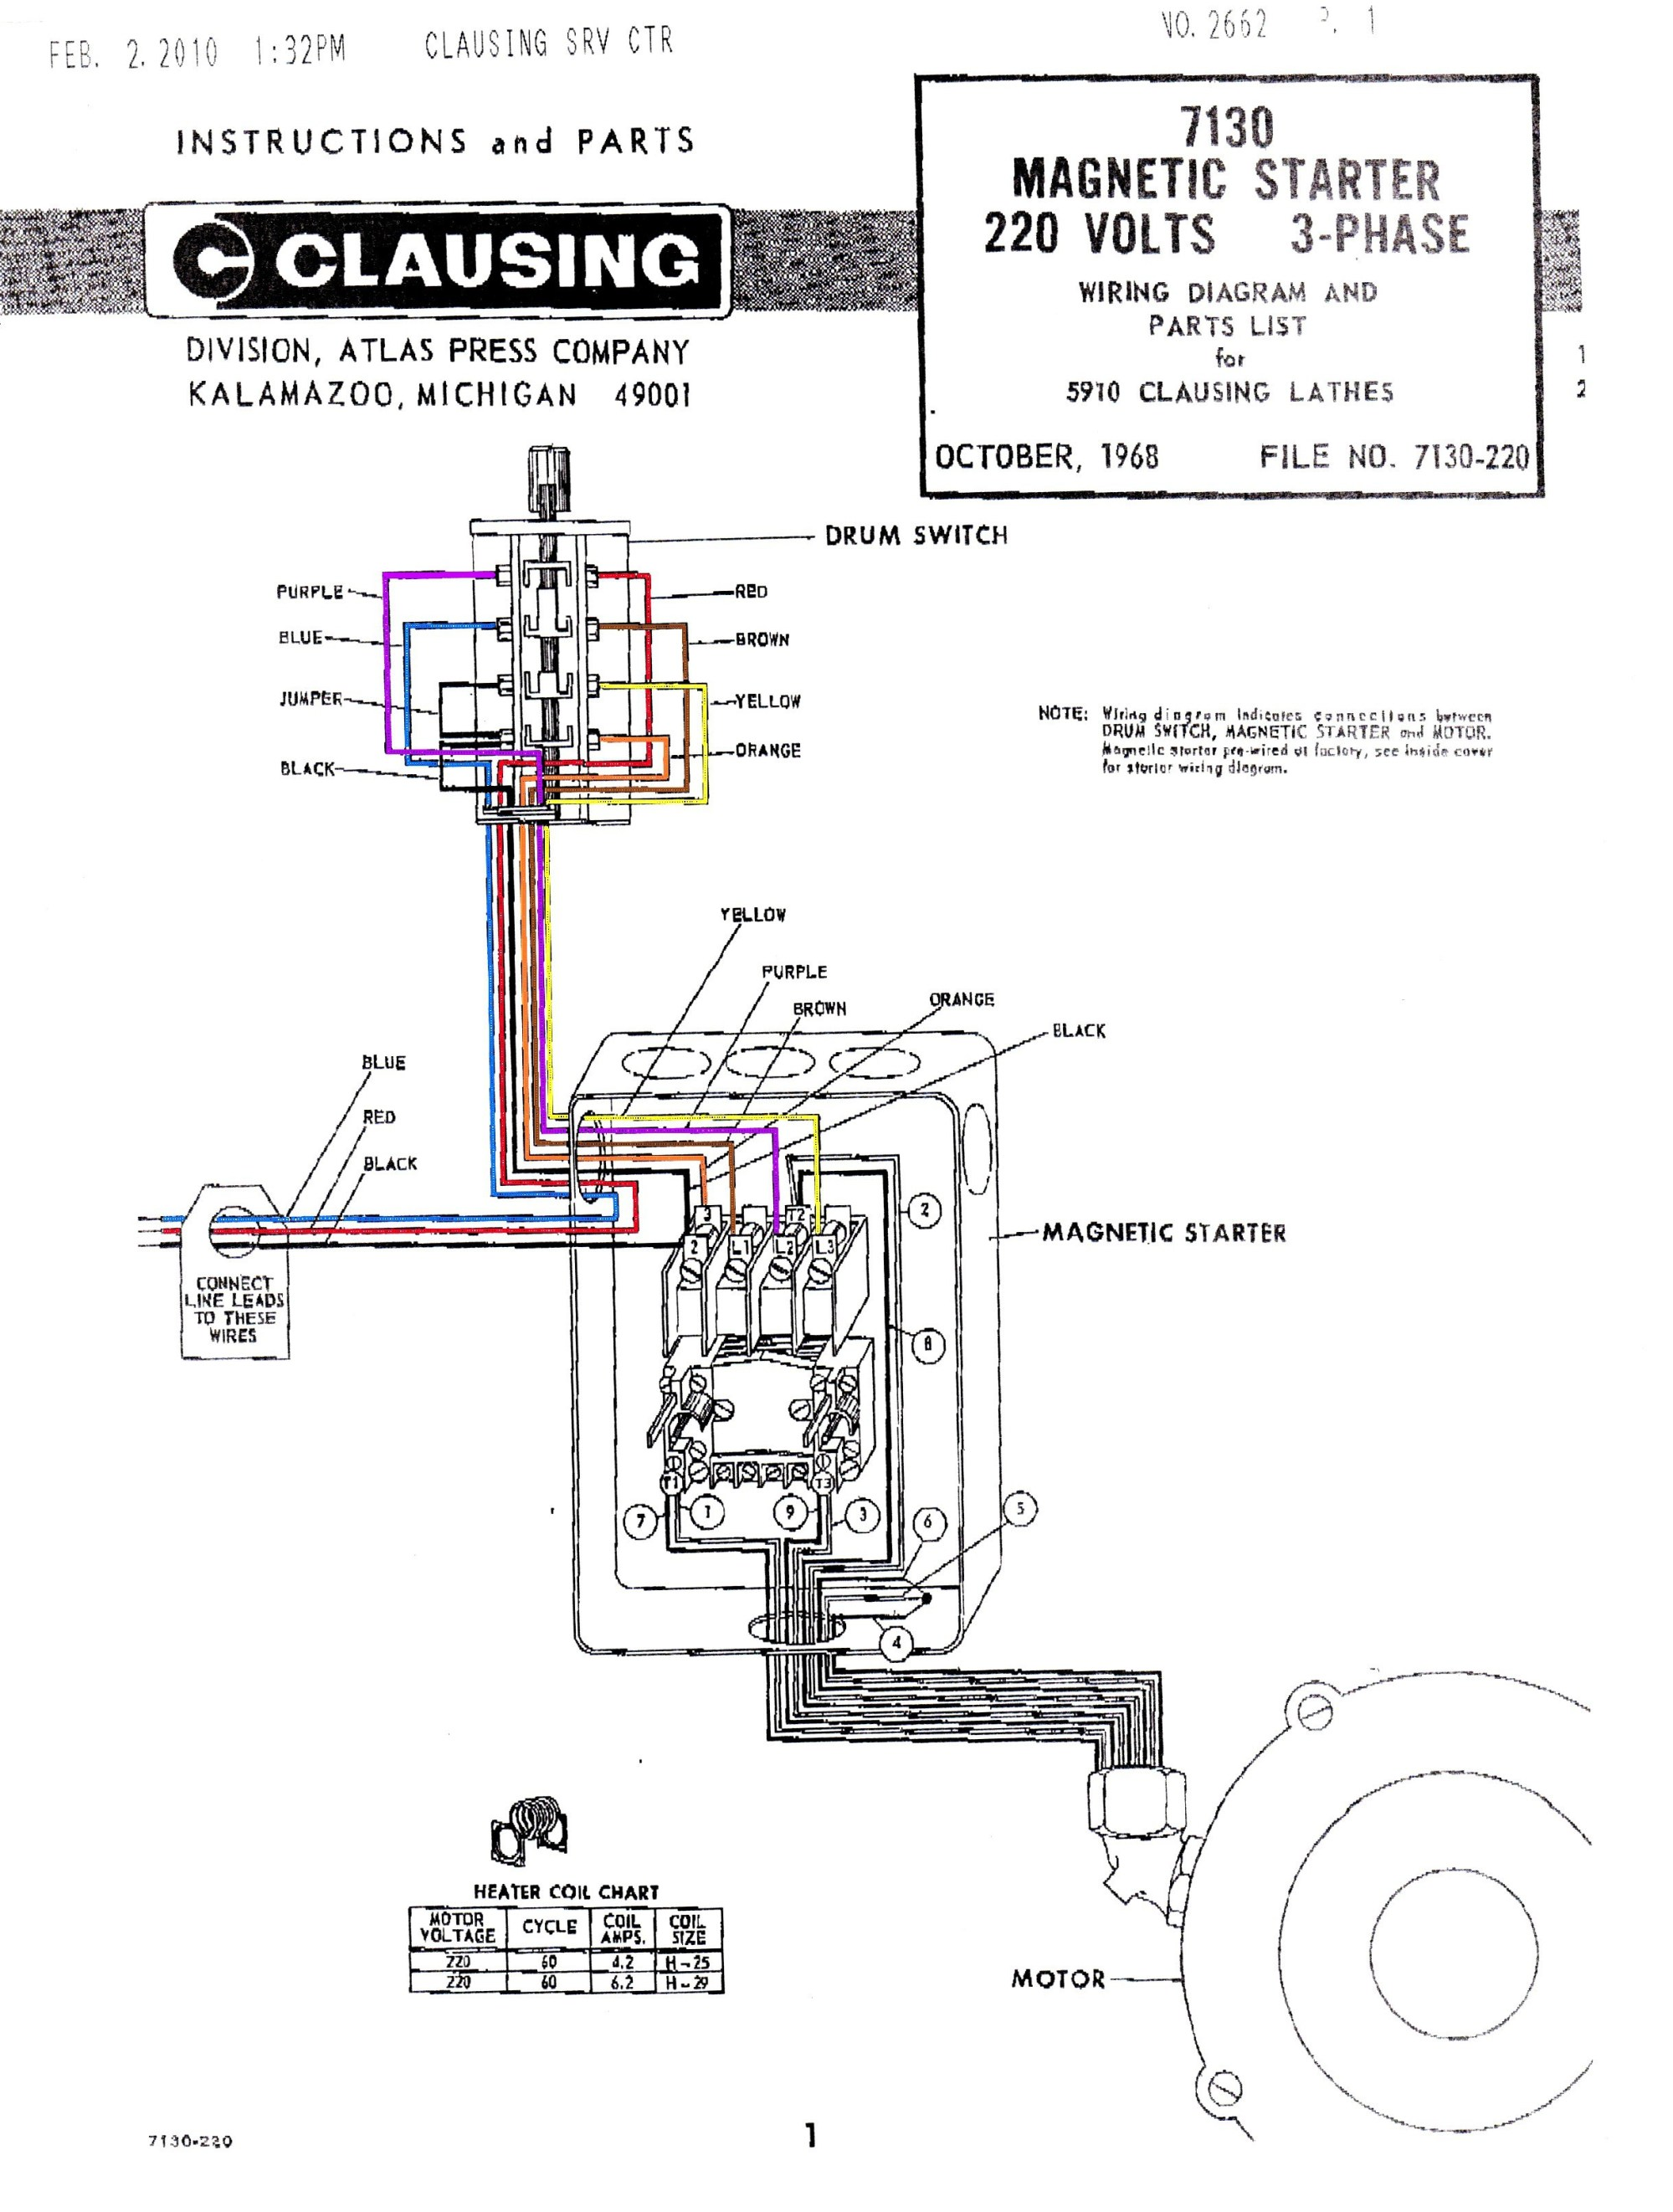 hight resolution of manual motor starter switch wiring diagram wiring diagram completed duplex motor starter wiring diagram wiring diagram